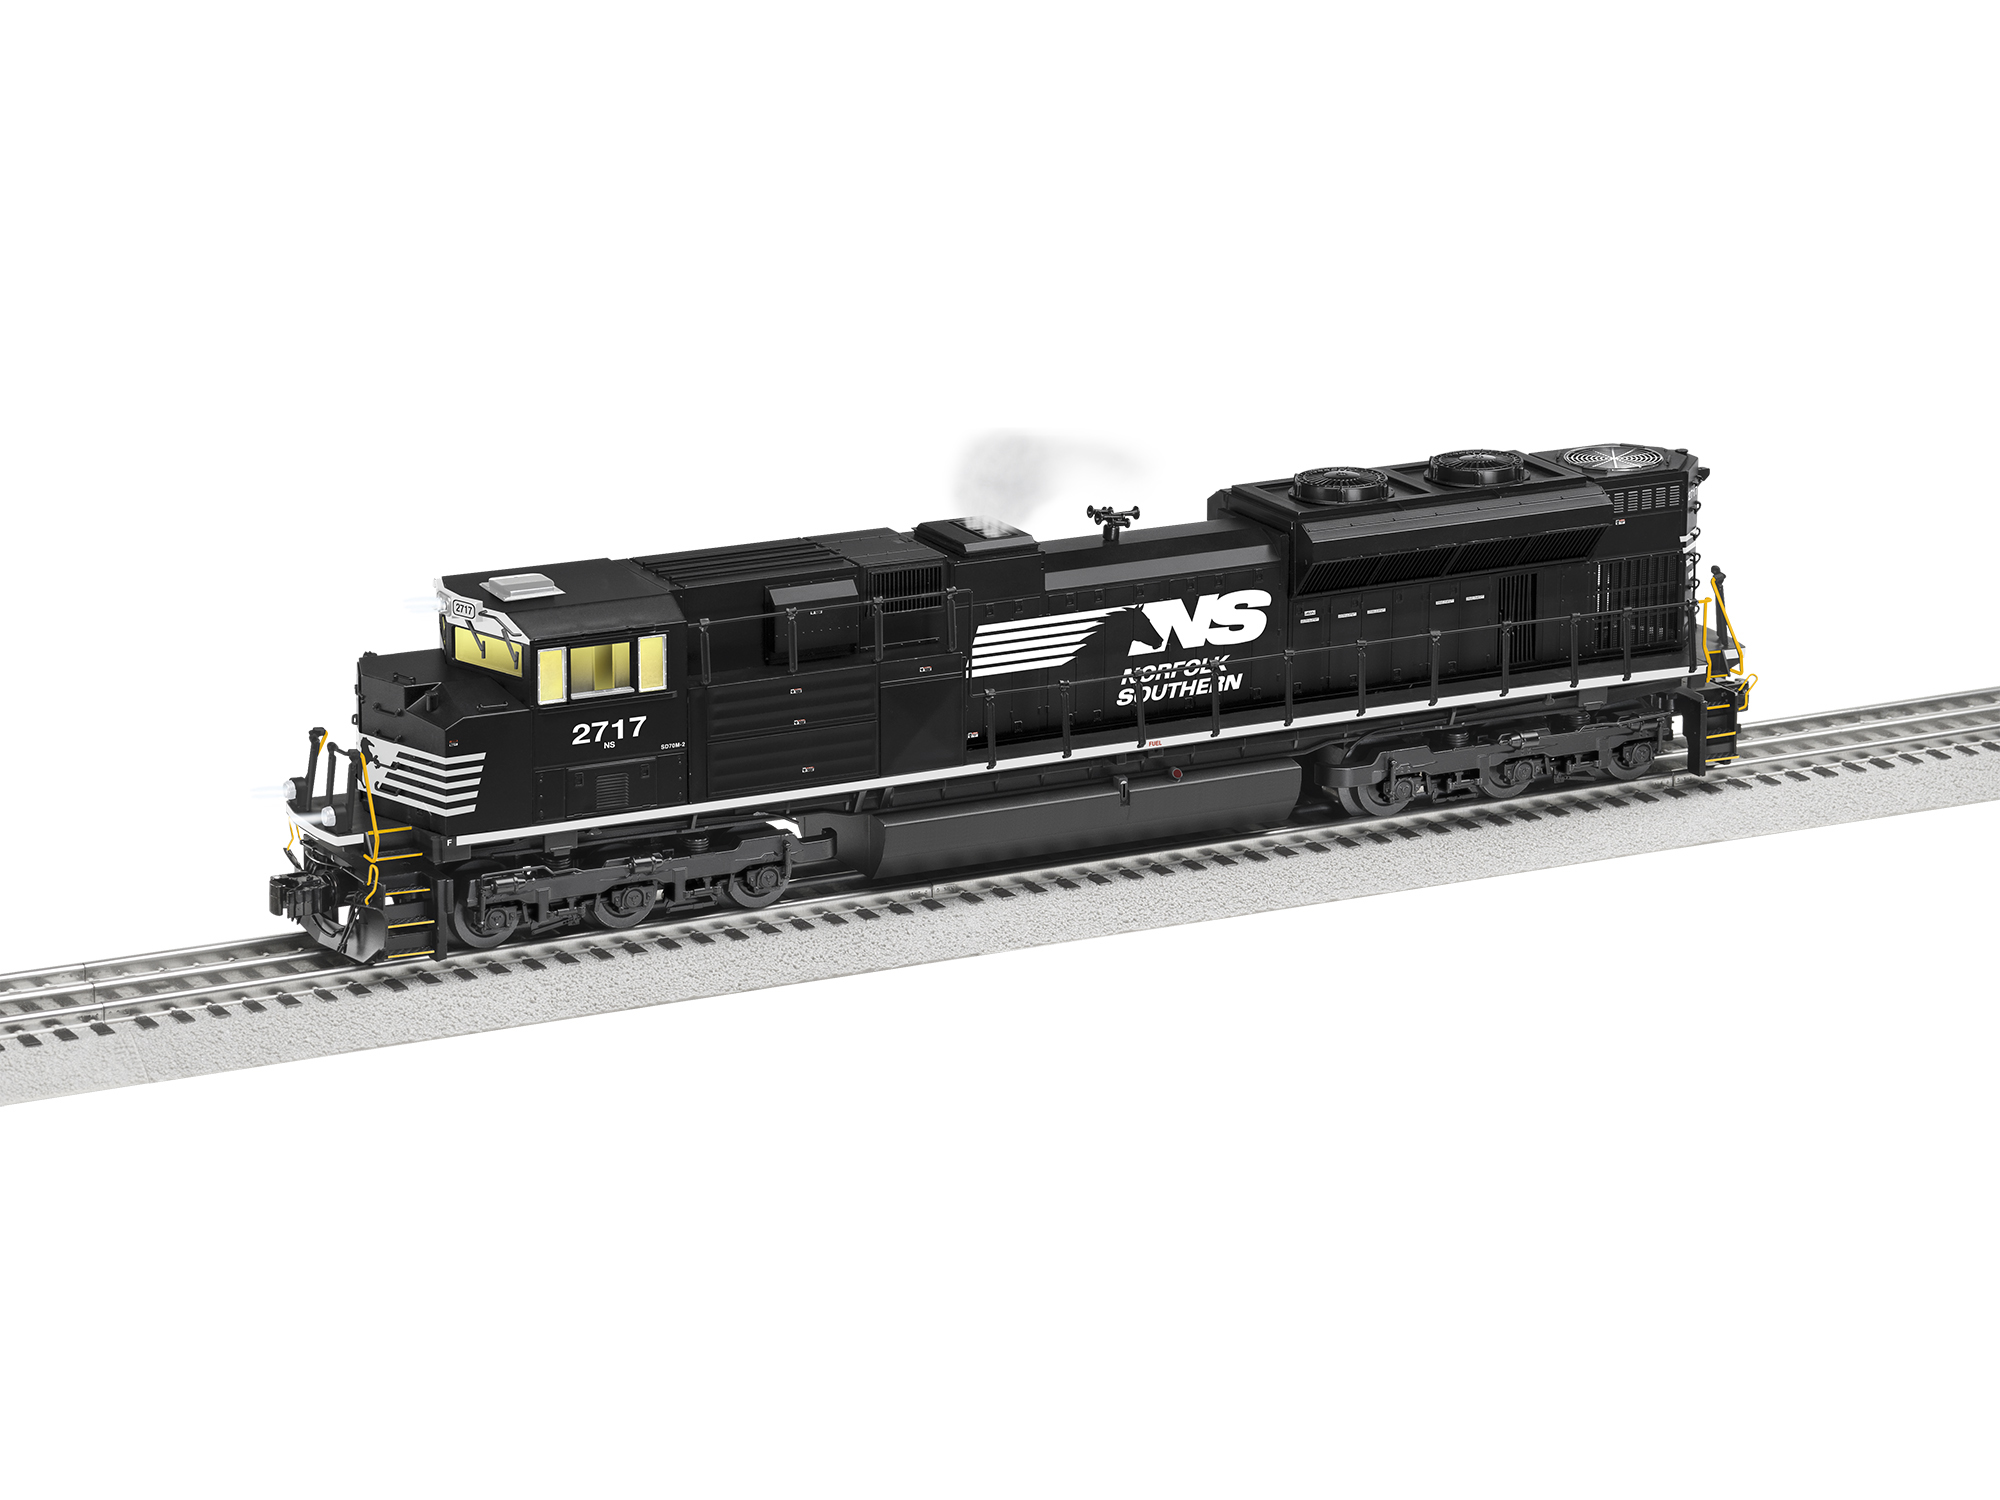 Lionel 2033211 O EMD SD70M-2 3-Rail Legacy Sound and Control Norfolk Southern 2717 434-2033211